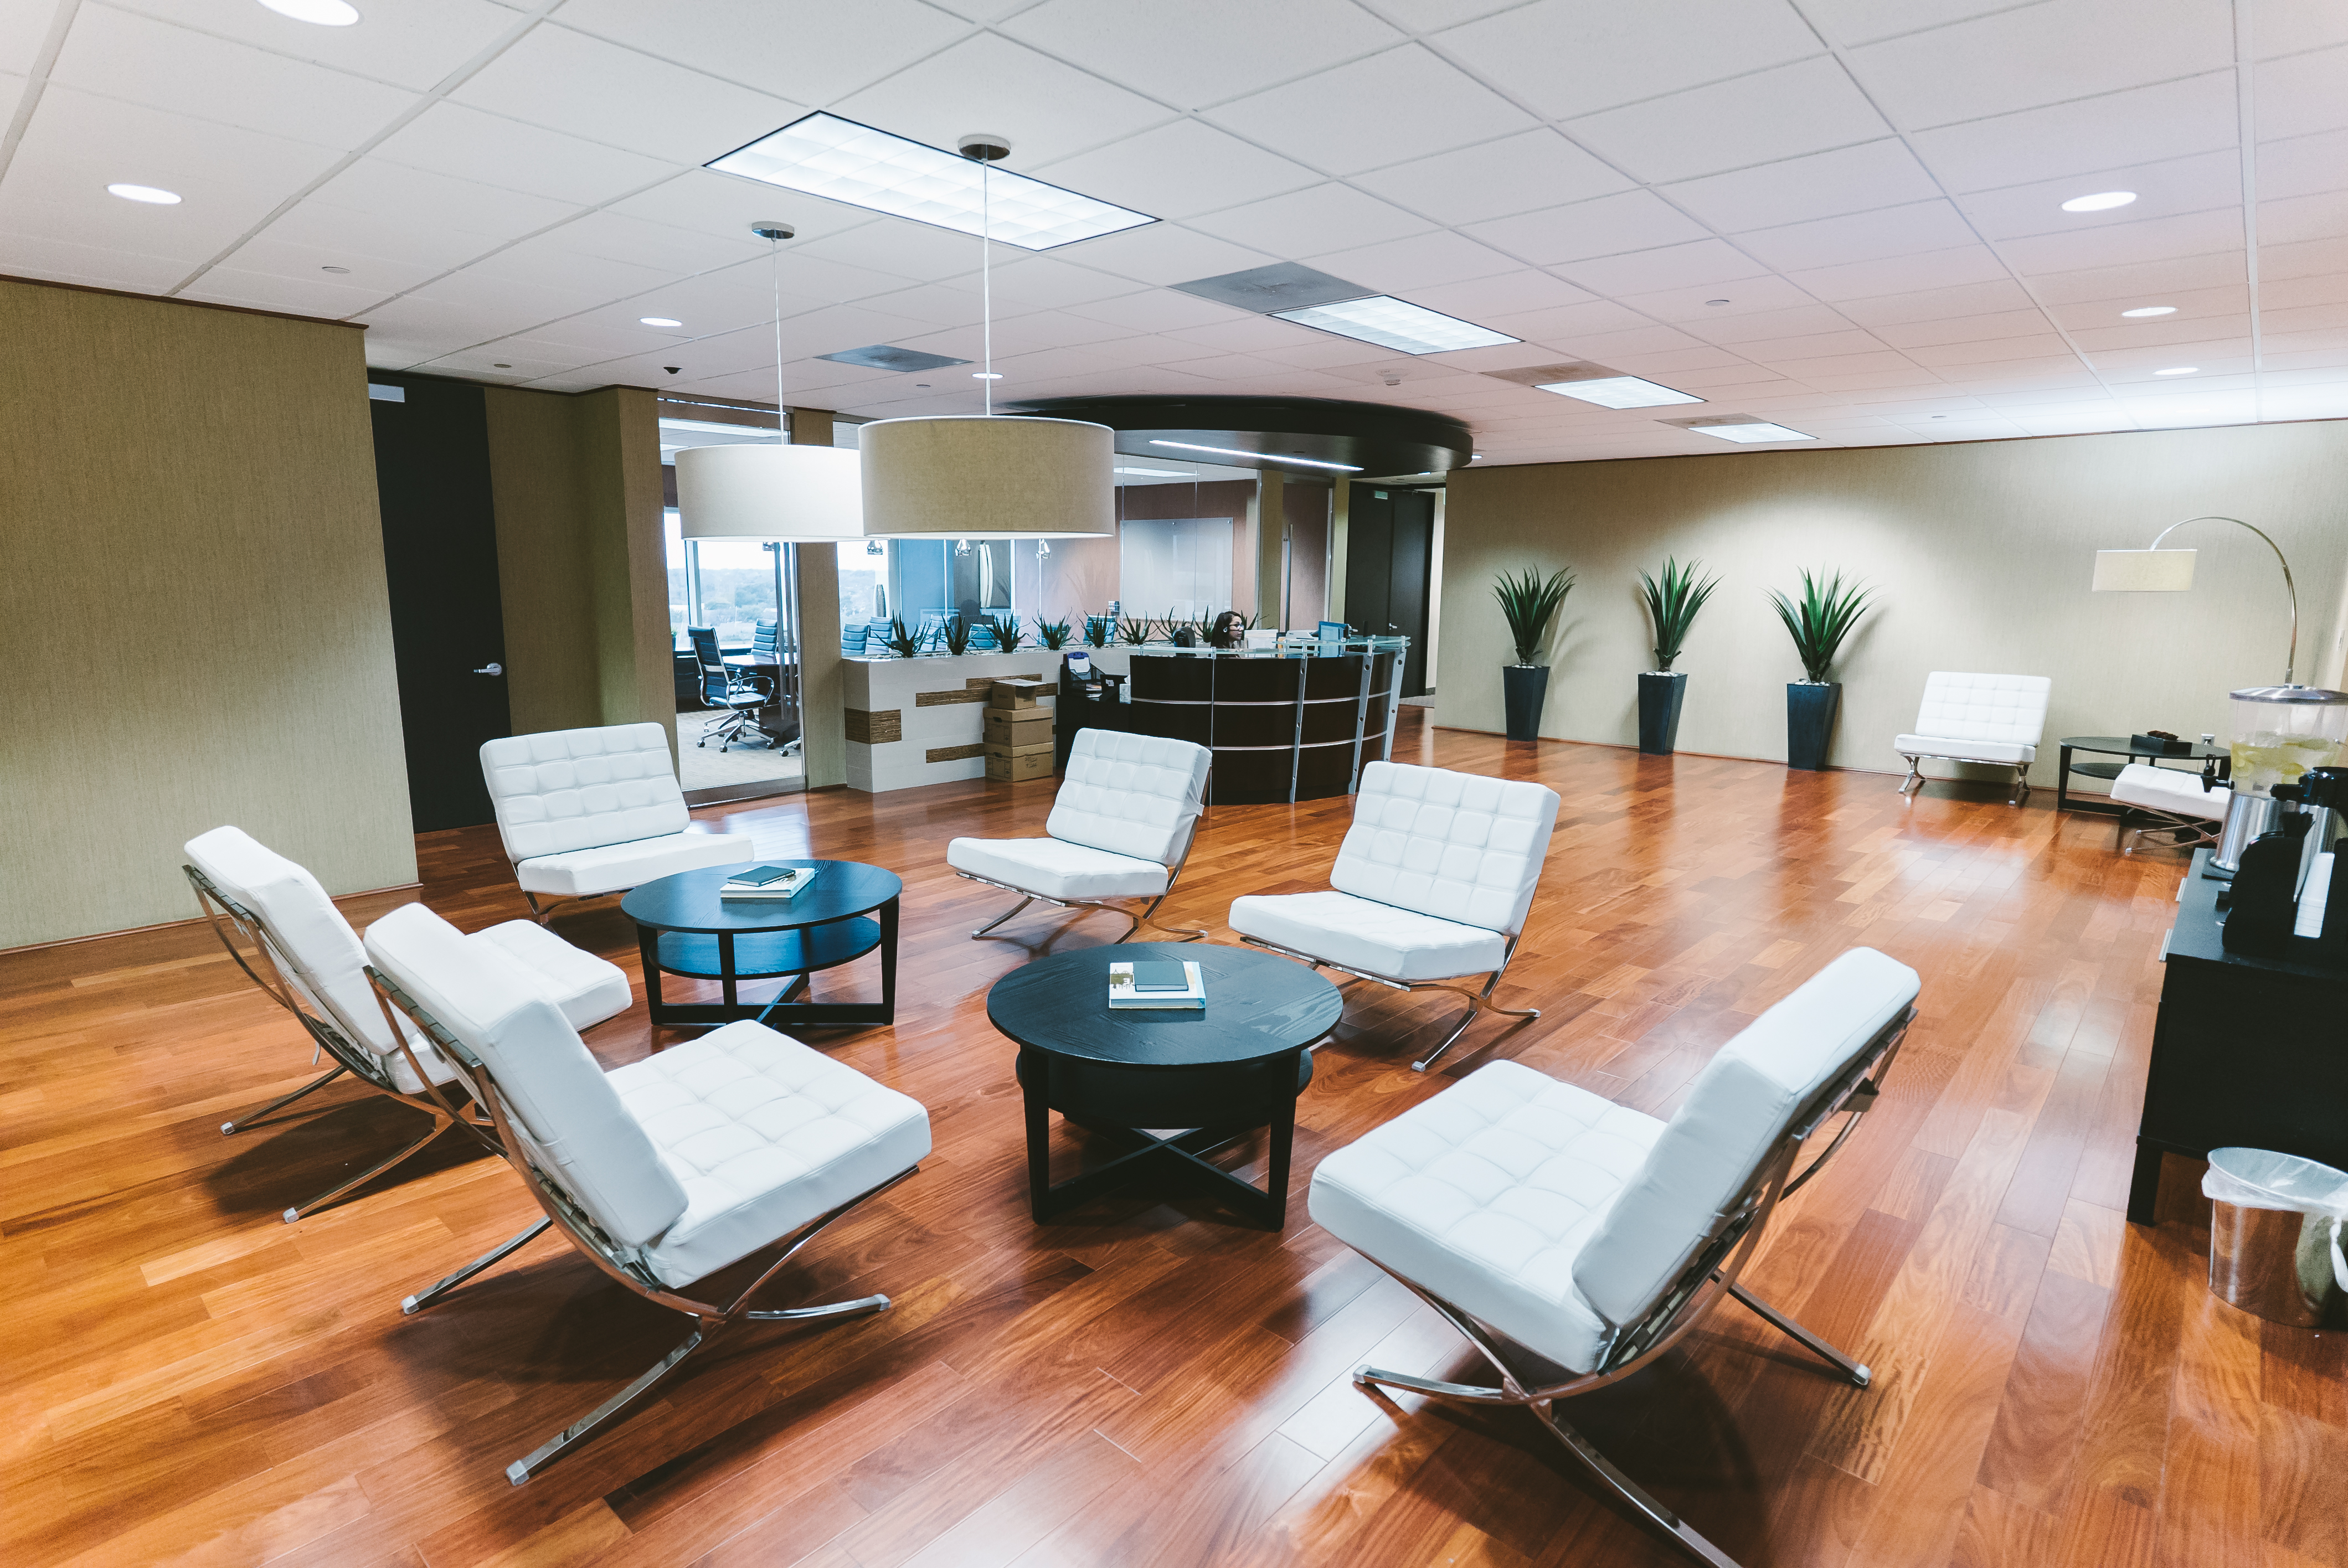 Office Space in North Central Expressway 10440 North Central Expressway Suite